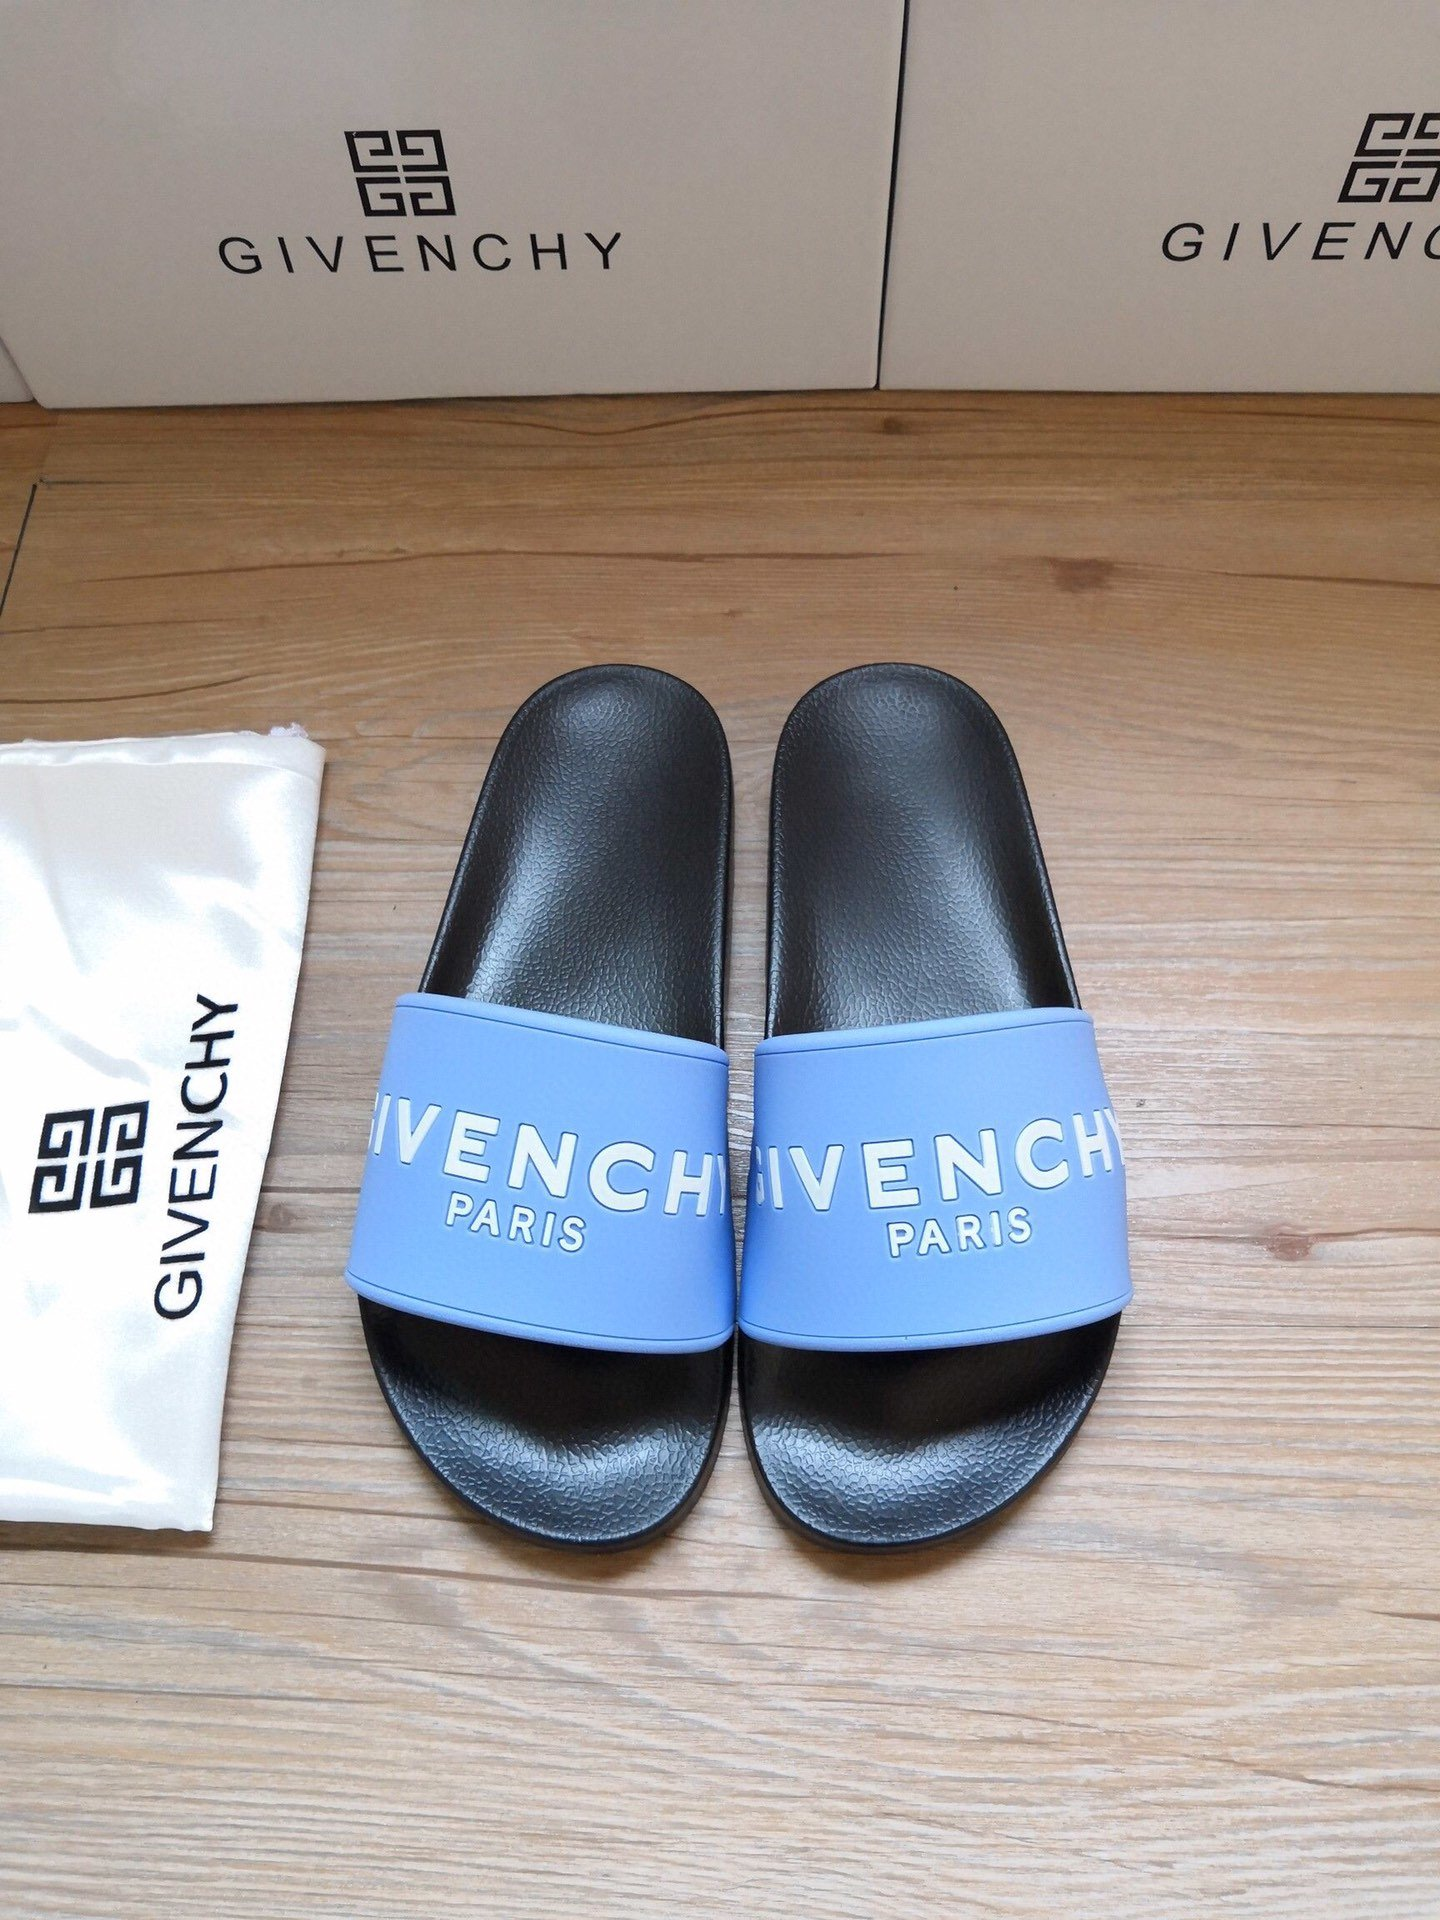 Givenchy Shoes-27